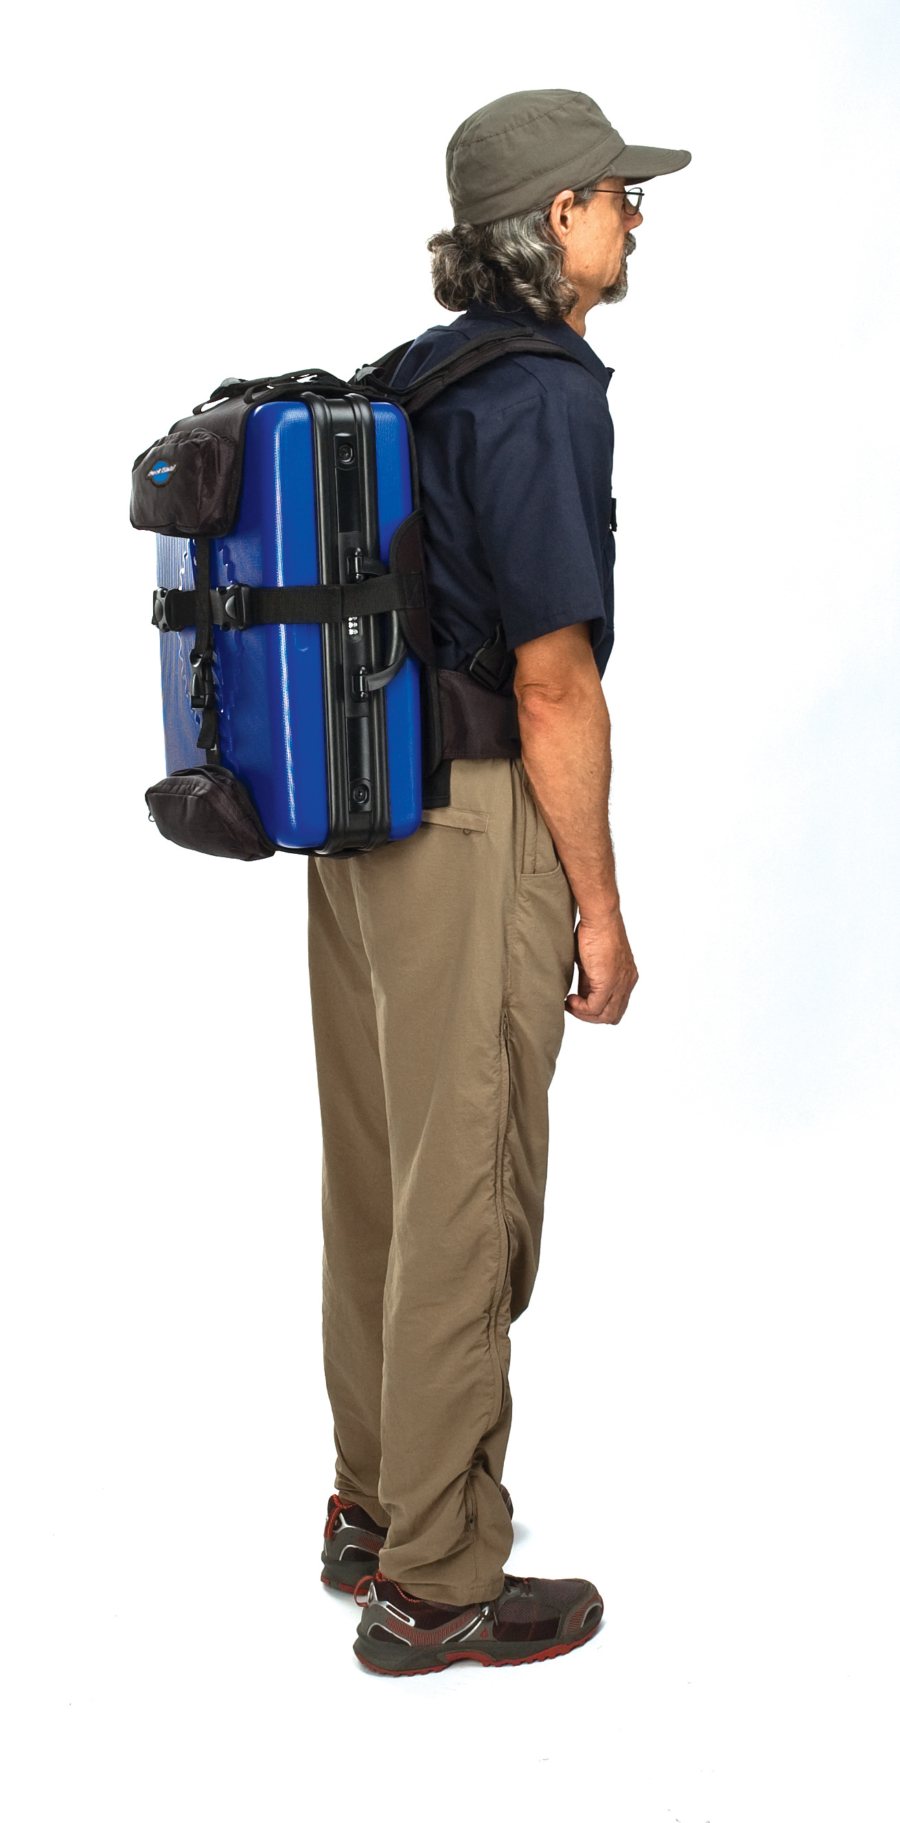 The Park Tool BXB-1 Backpack Harness for BX-1 on model, enlarged